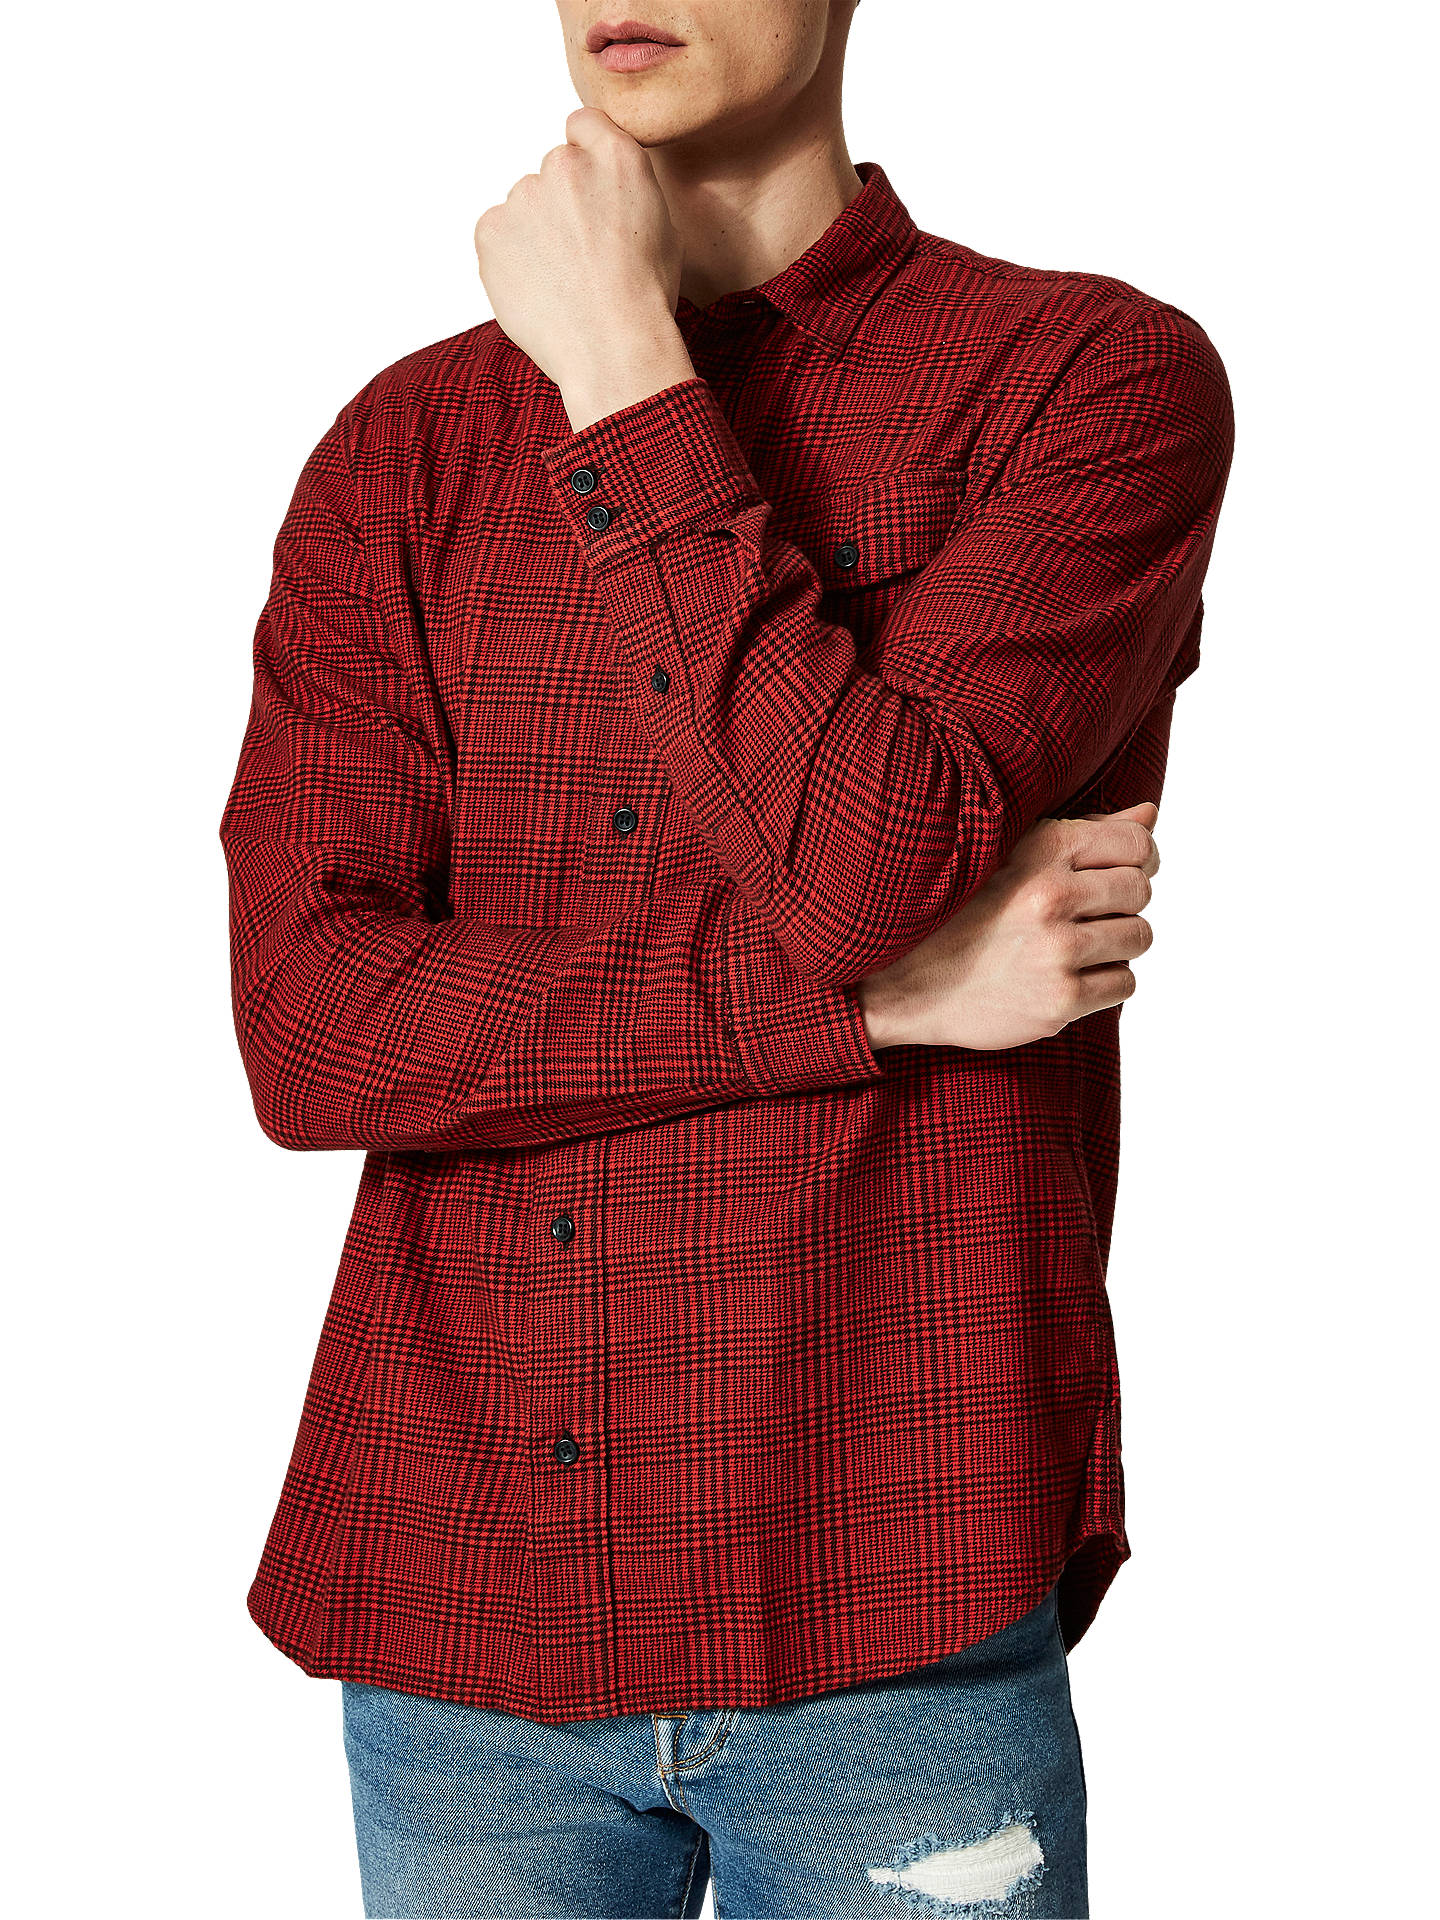 BuySelected Homme Valdemar Long Sleeve Check Shirt, Red, L Online at johnlewis.com